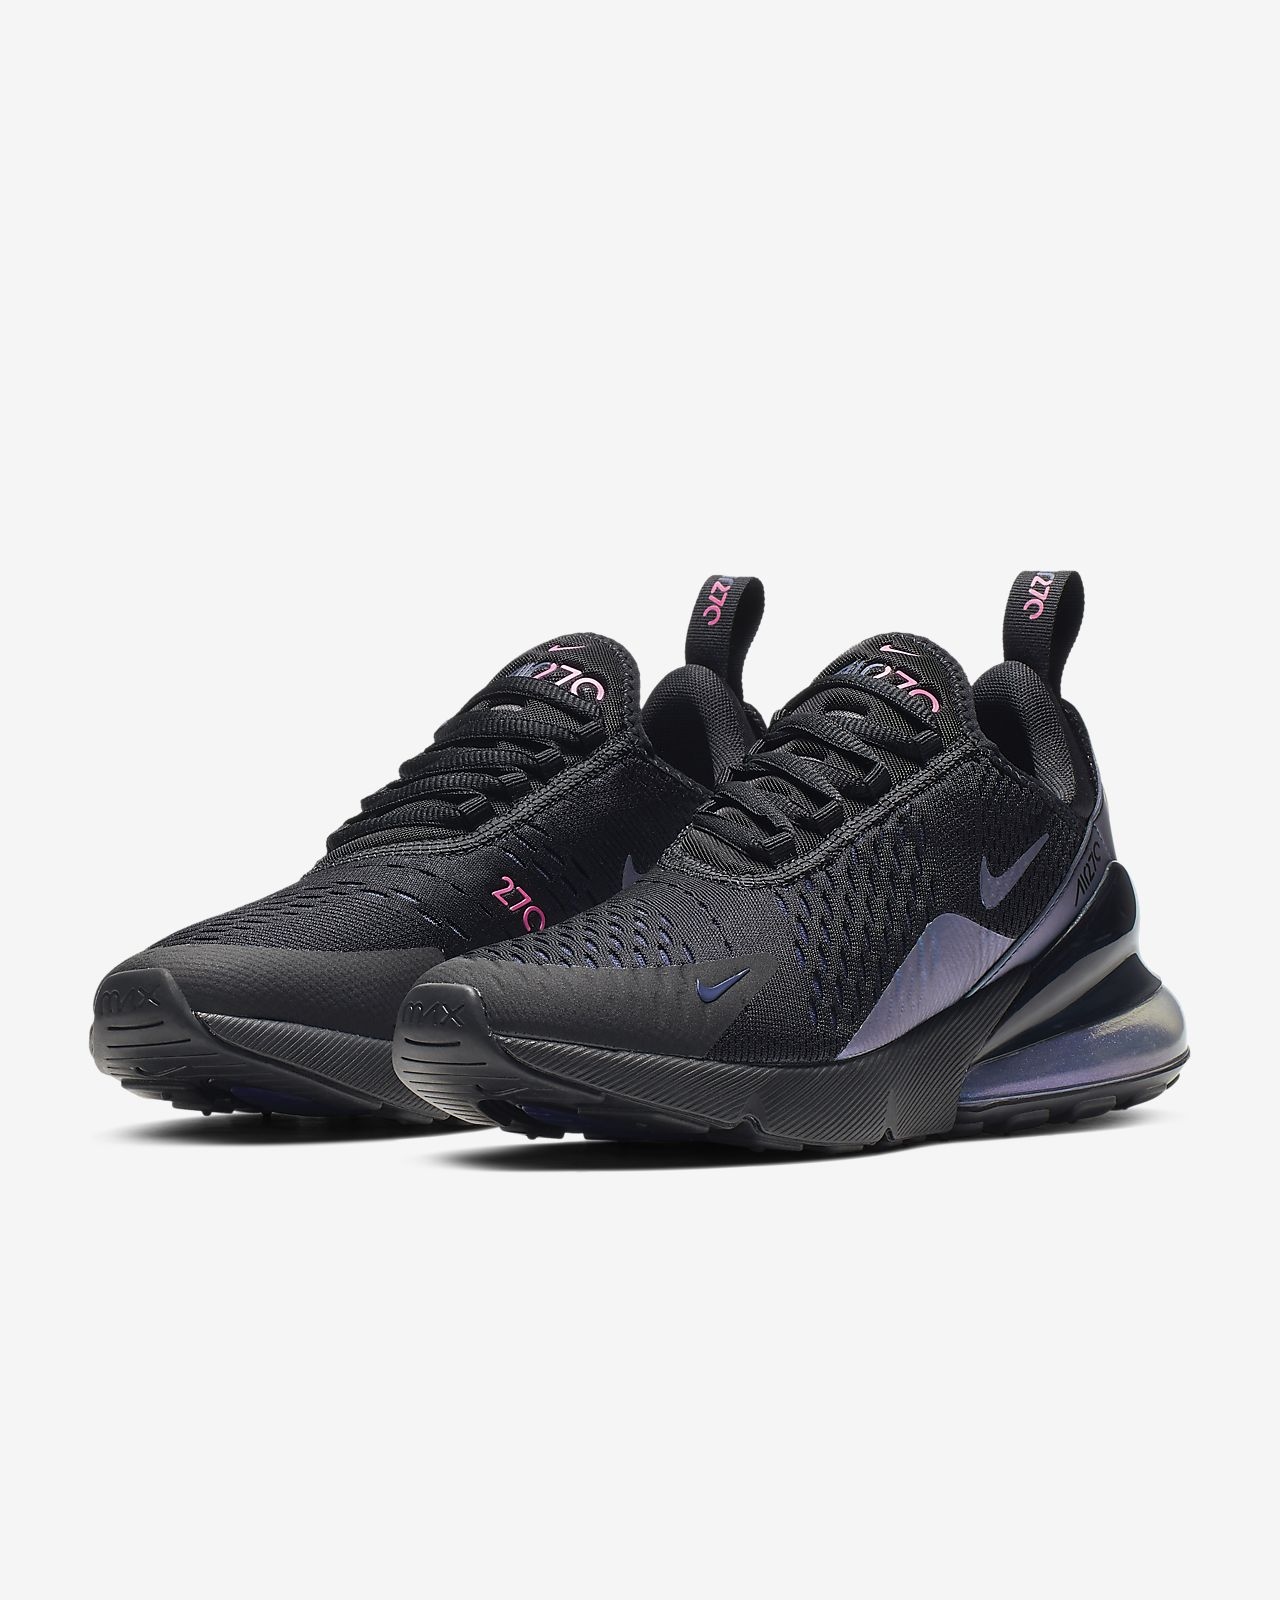 3cff33c8f8f Chaussure Nike Air Max 270 pour Femme. Nike.com BE